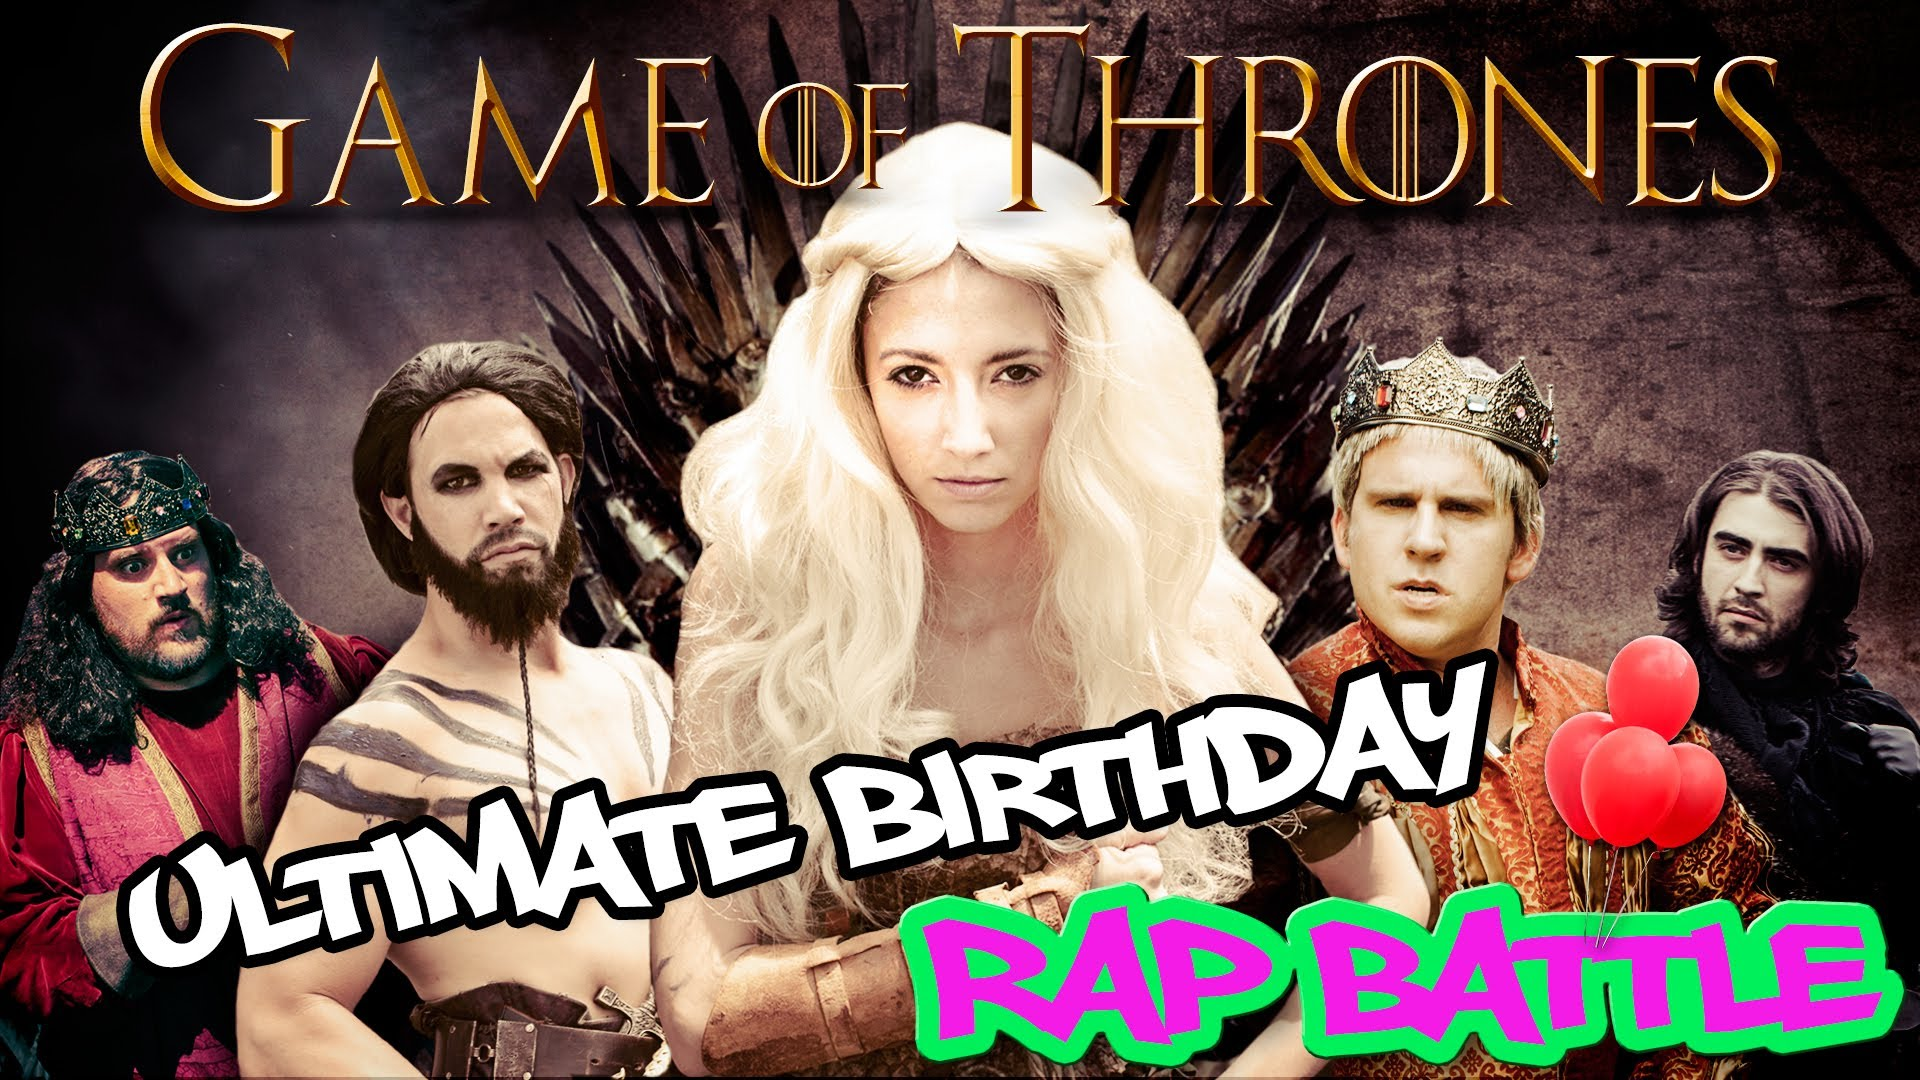 Game of thrones rap battle at a kid s birthday party for Game of thrones birthday party